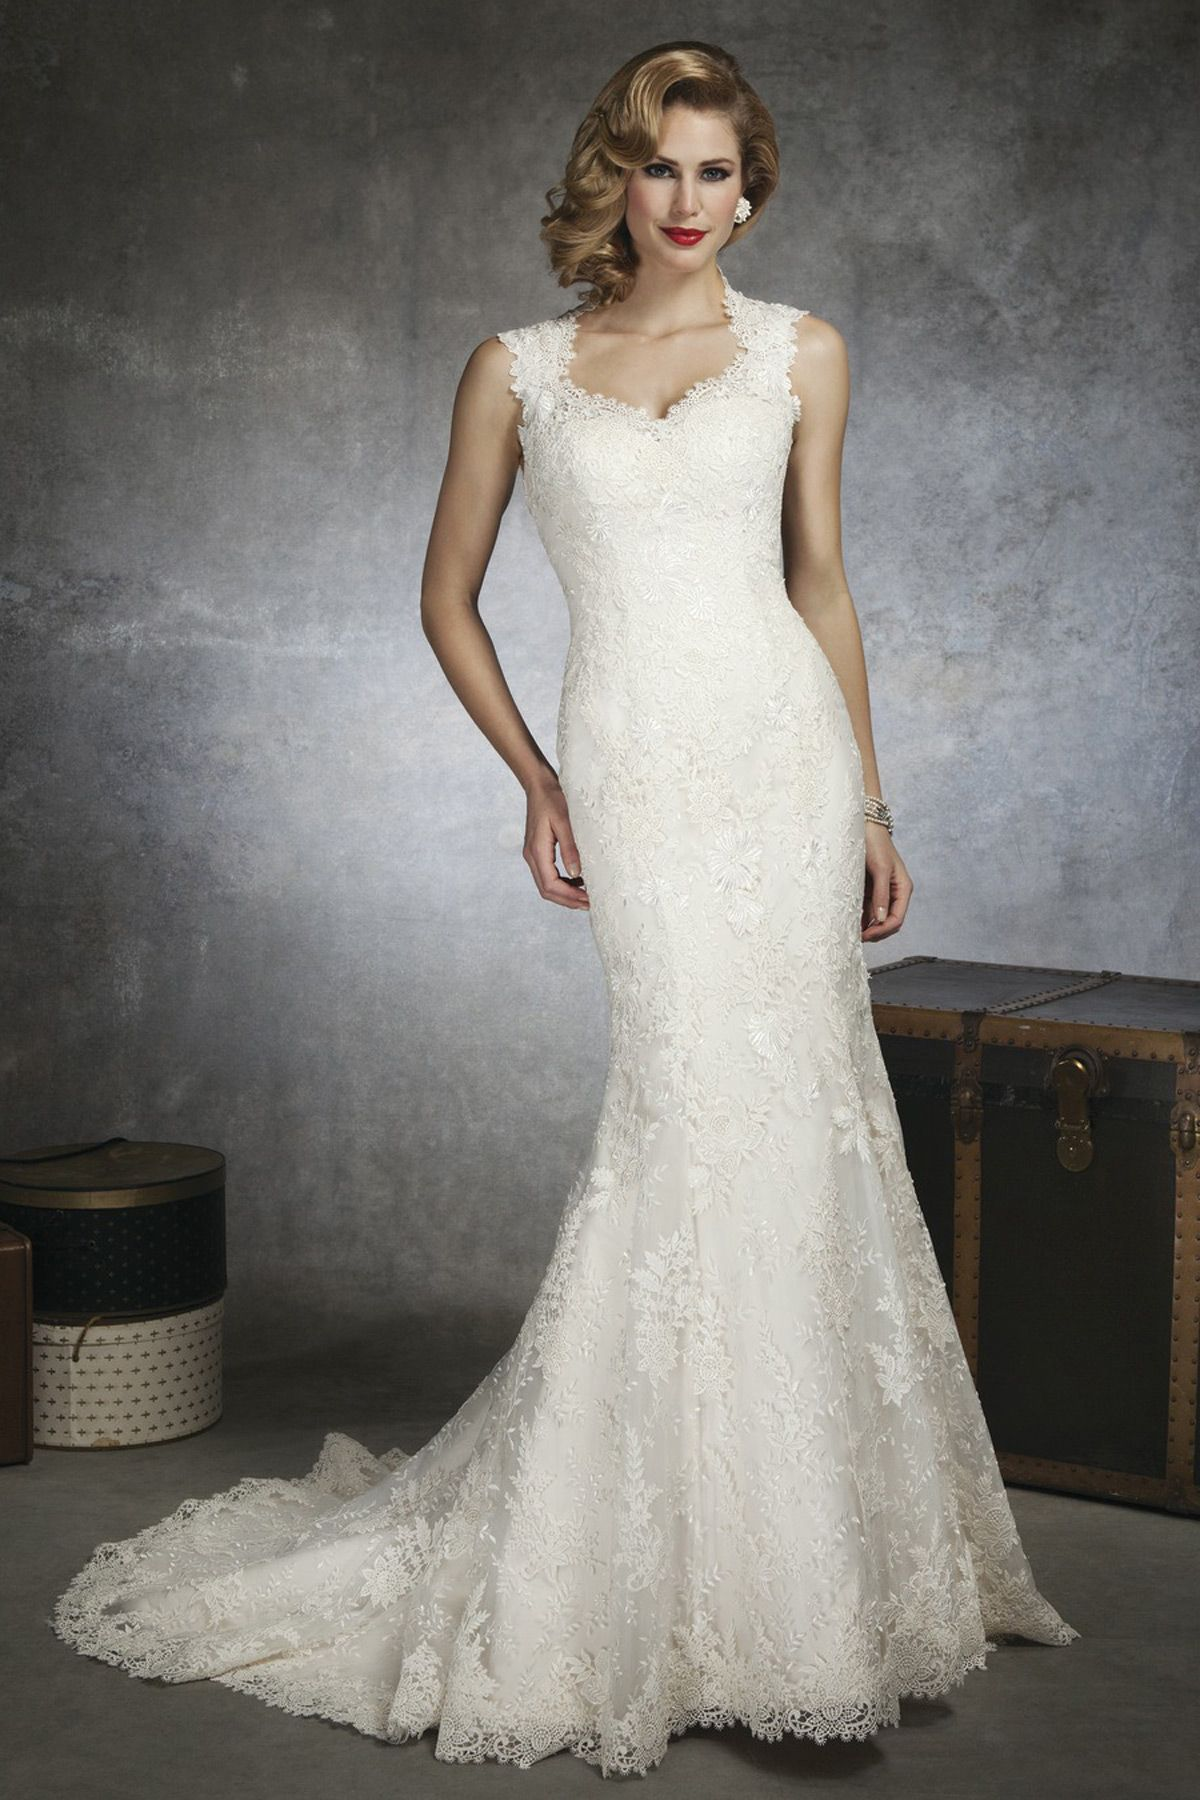 Justin alexander wedding dresses  Justin Alexander  Boux Av Competition  Pinterest  Jason chen